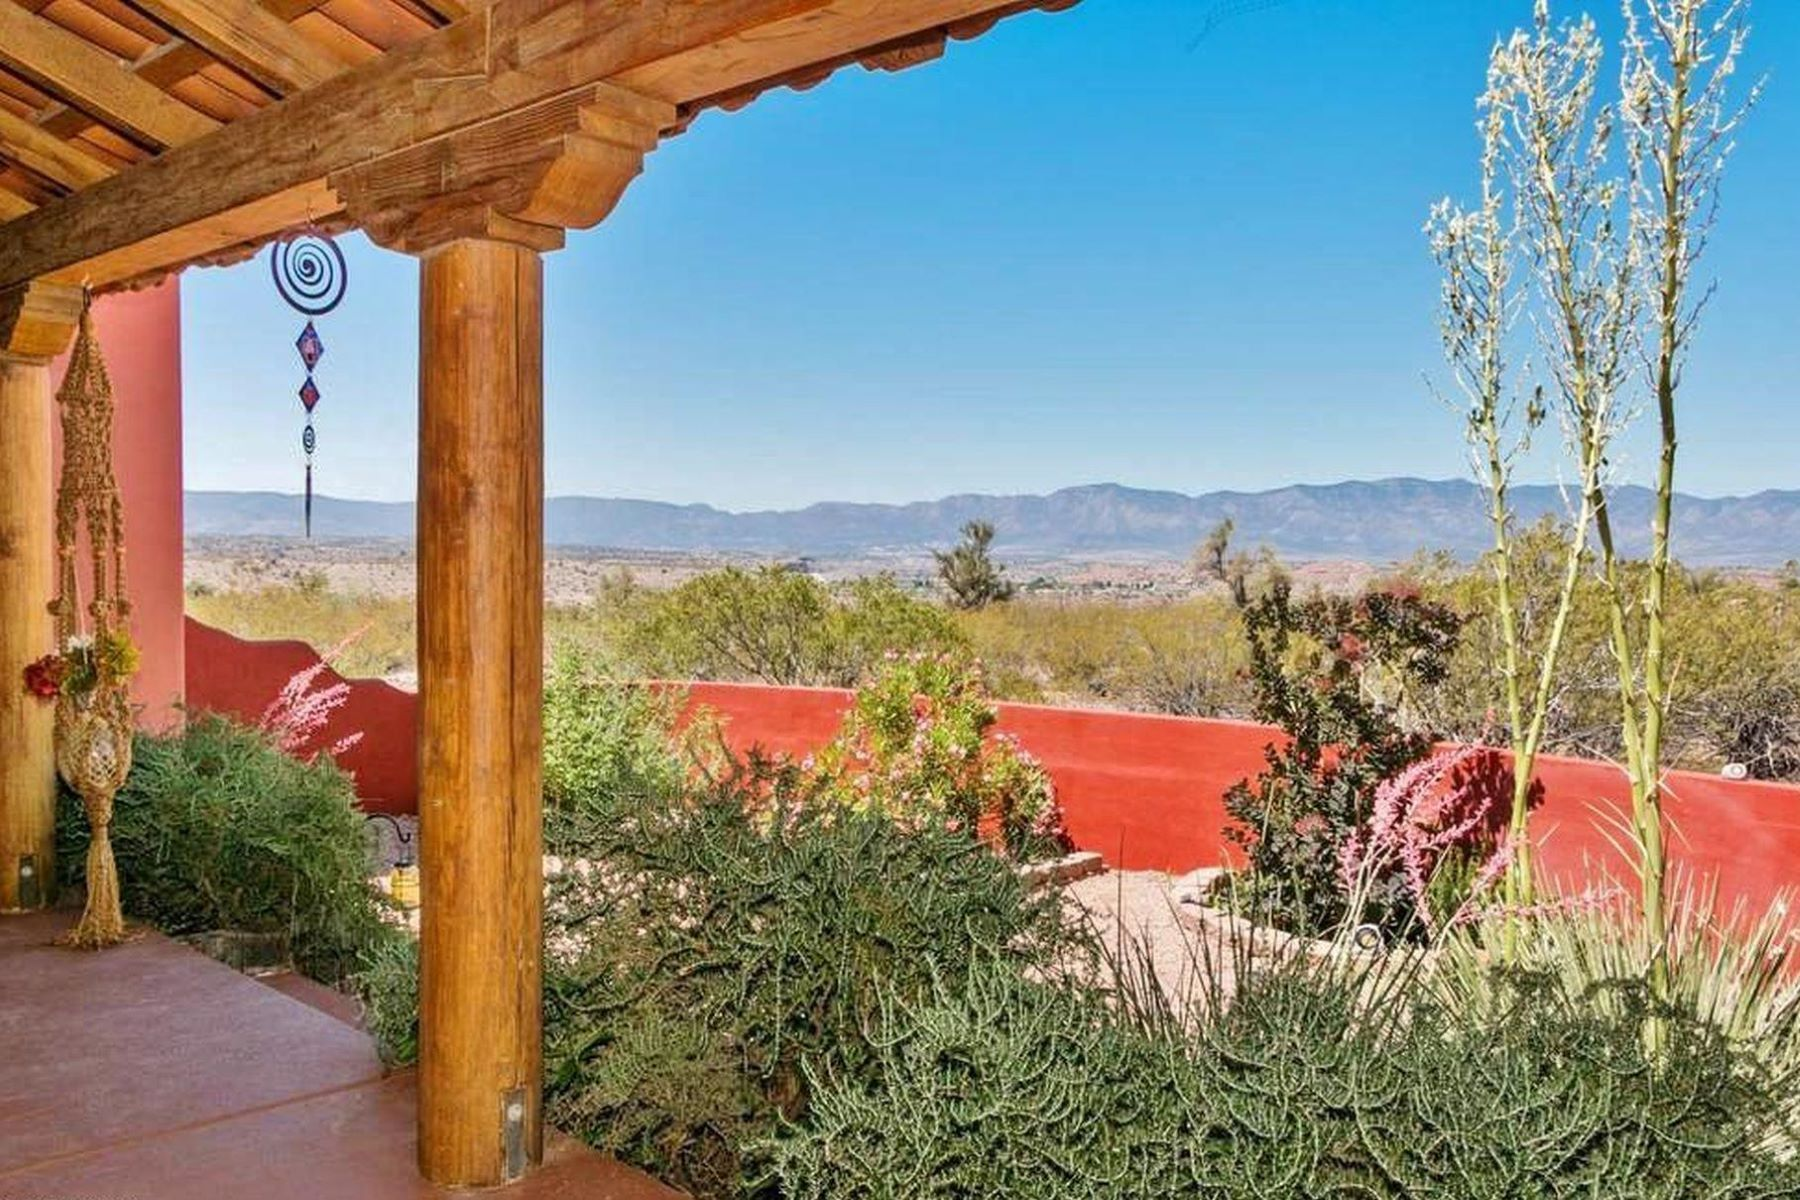 Single Family Homes for Sale at Beautiful Southwest Style Home 1625 S Koch Ranch Rd Cornville, Arizona 86325 United States